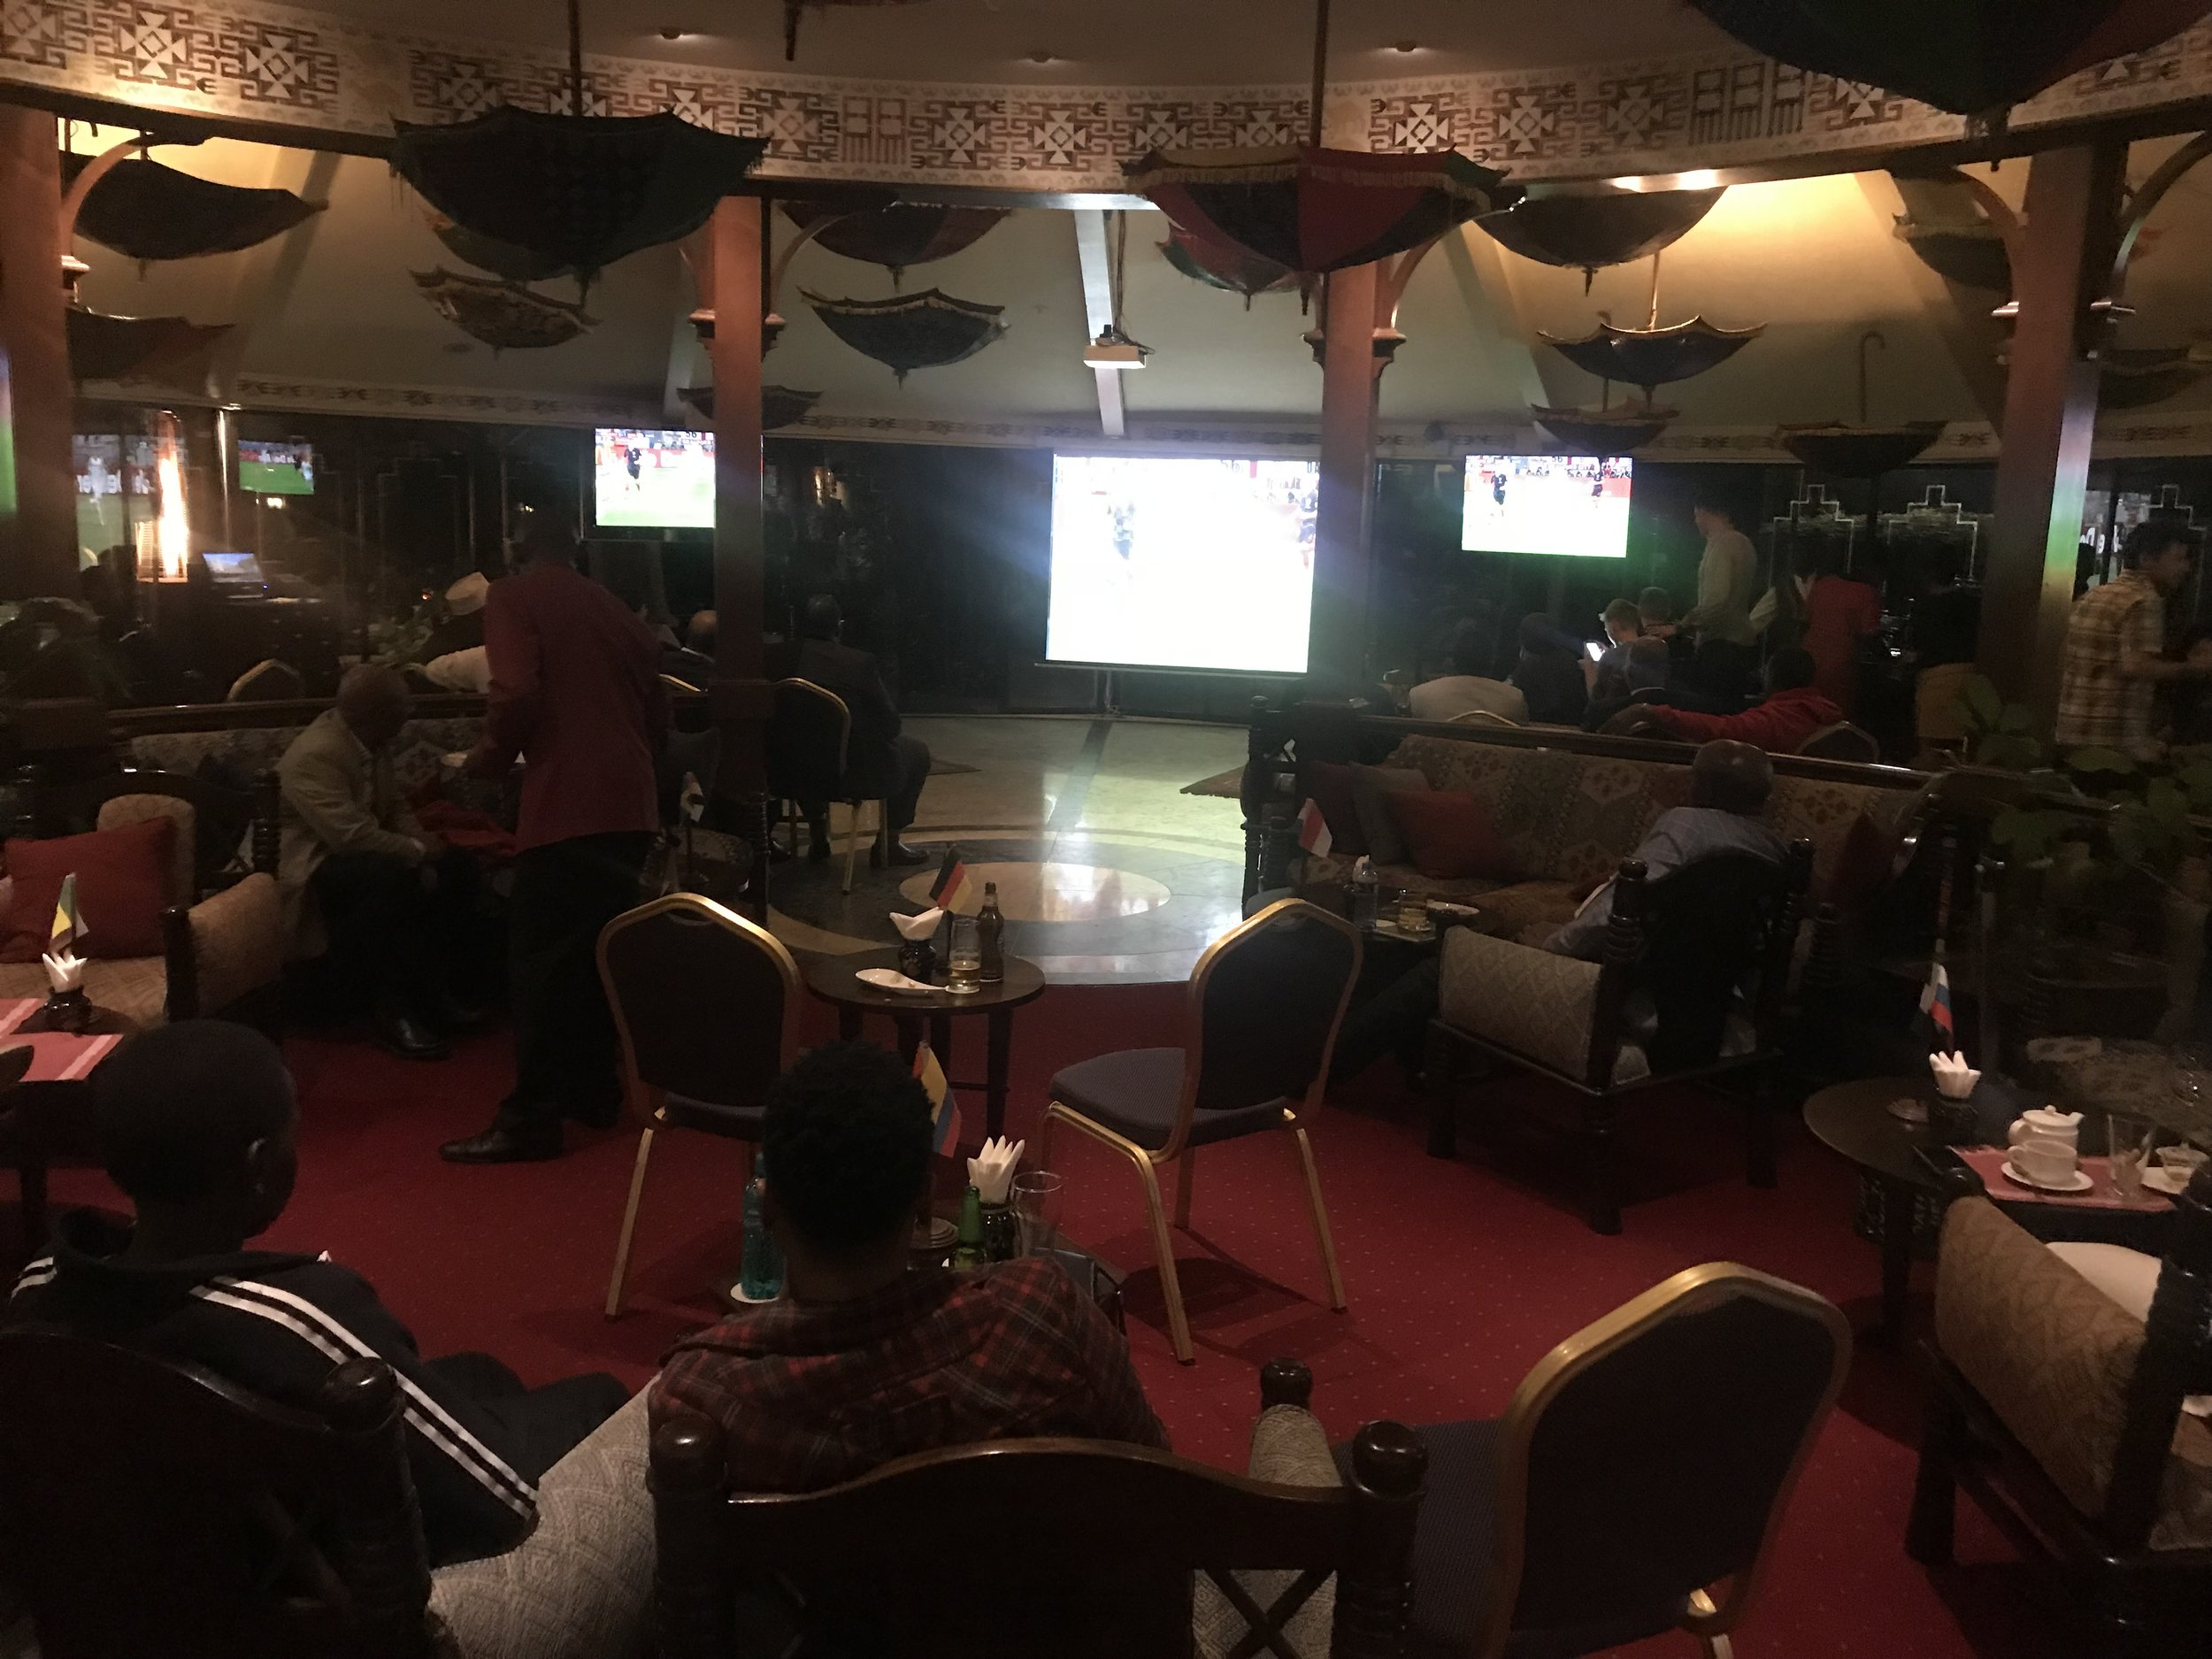 Watching the World Cup in the hotel bar